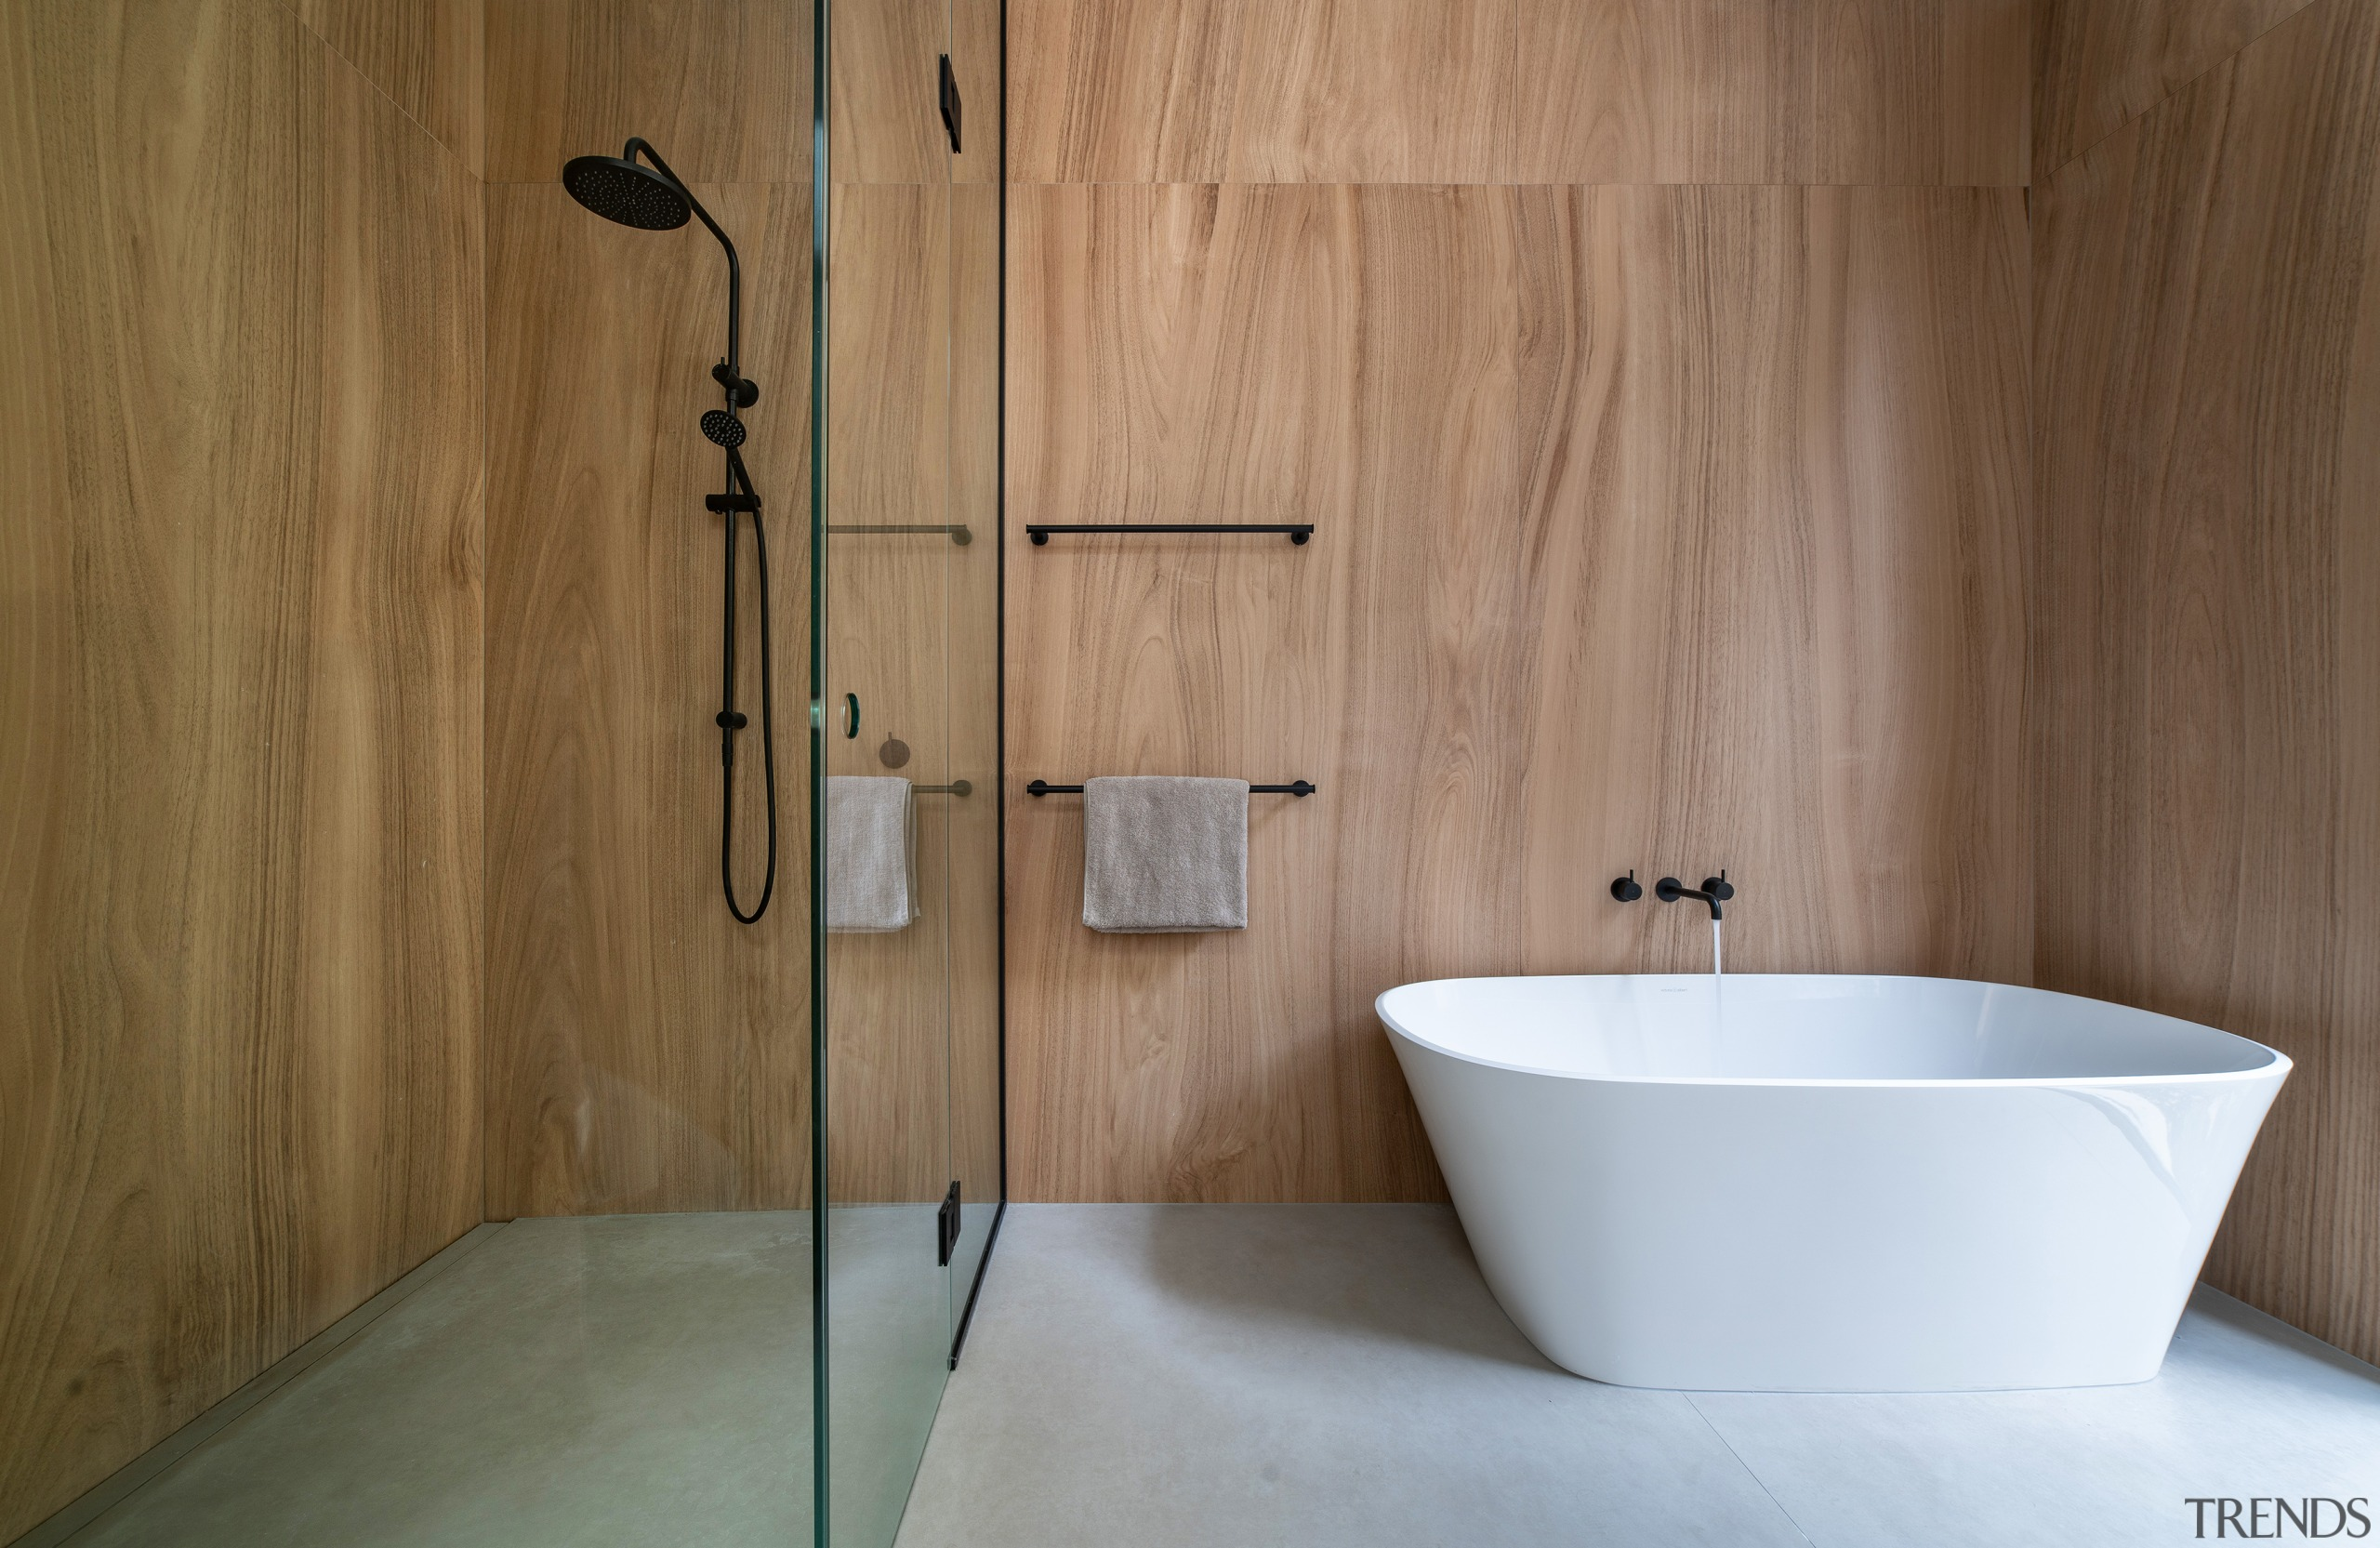 Concrete and wood make for a pleasing combination